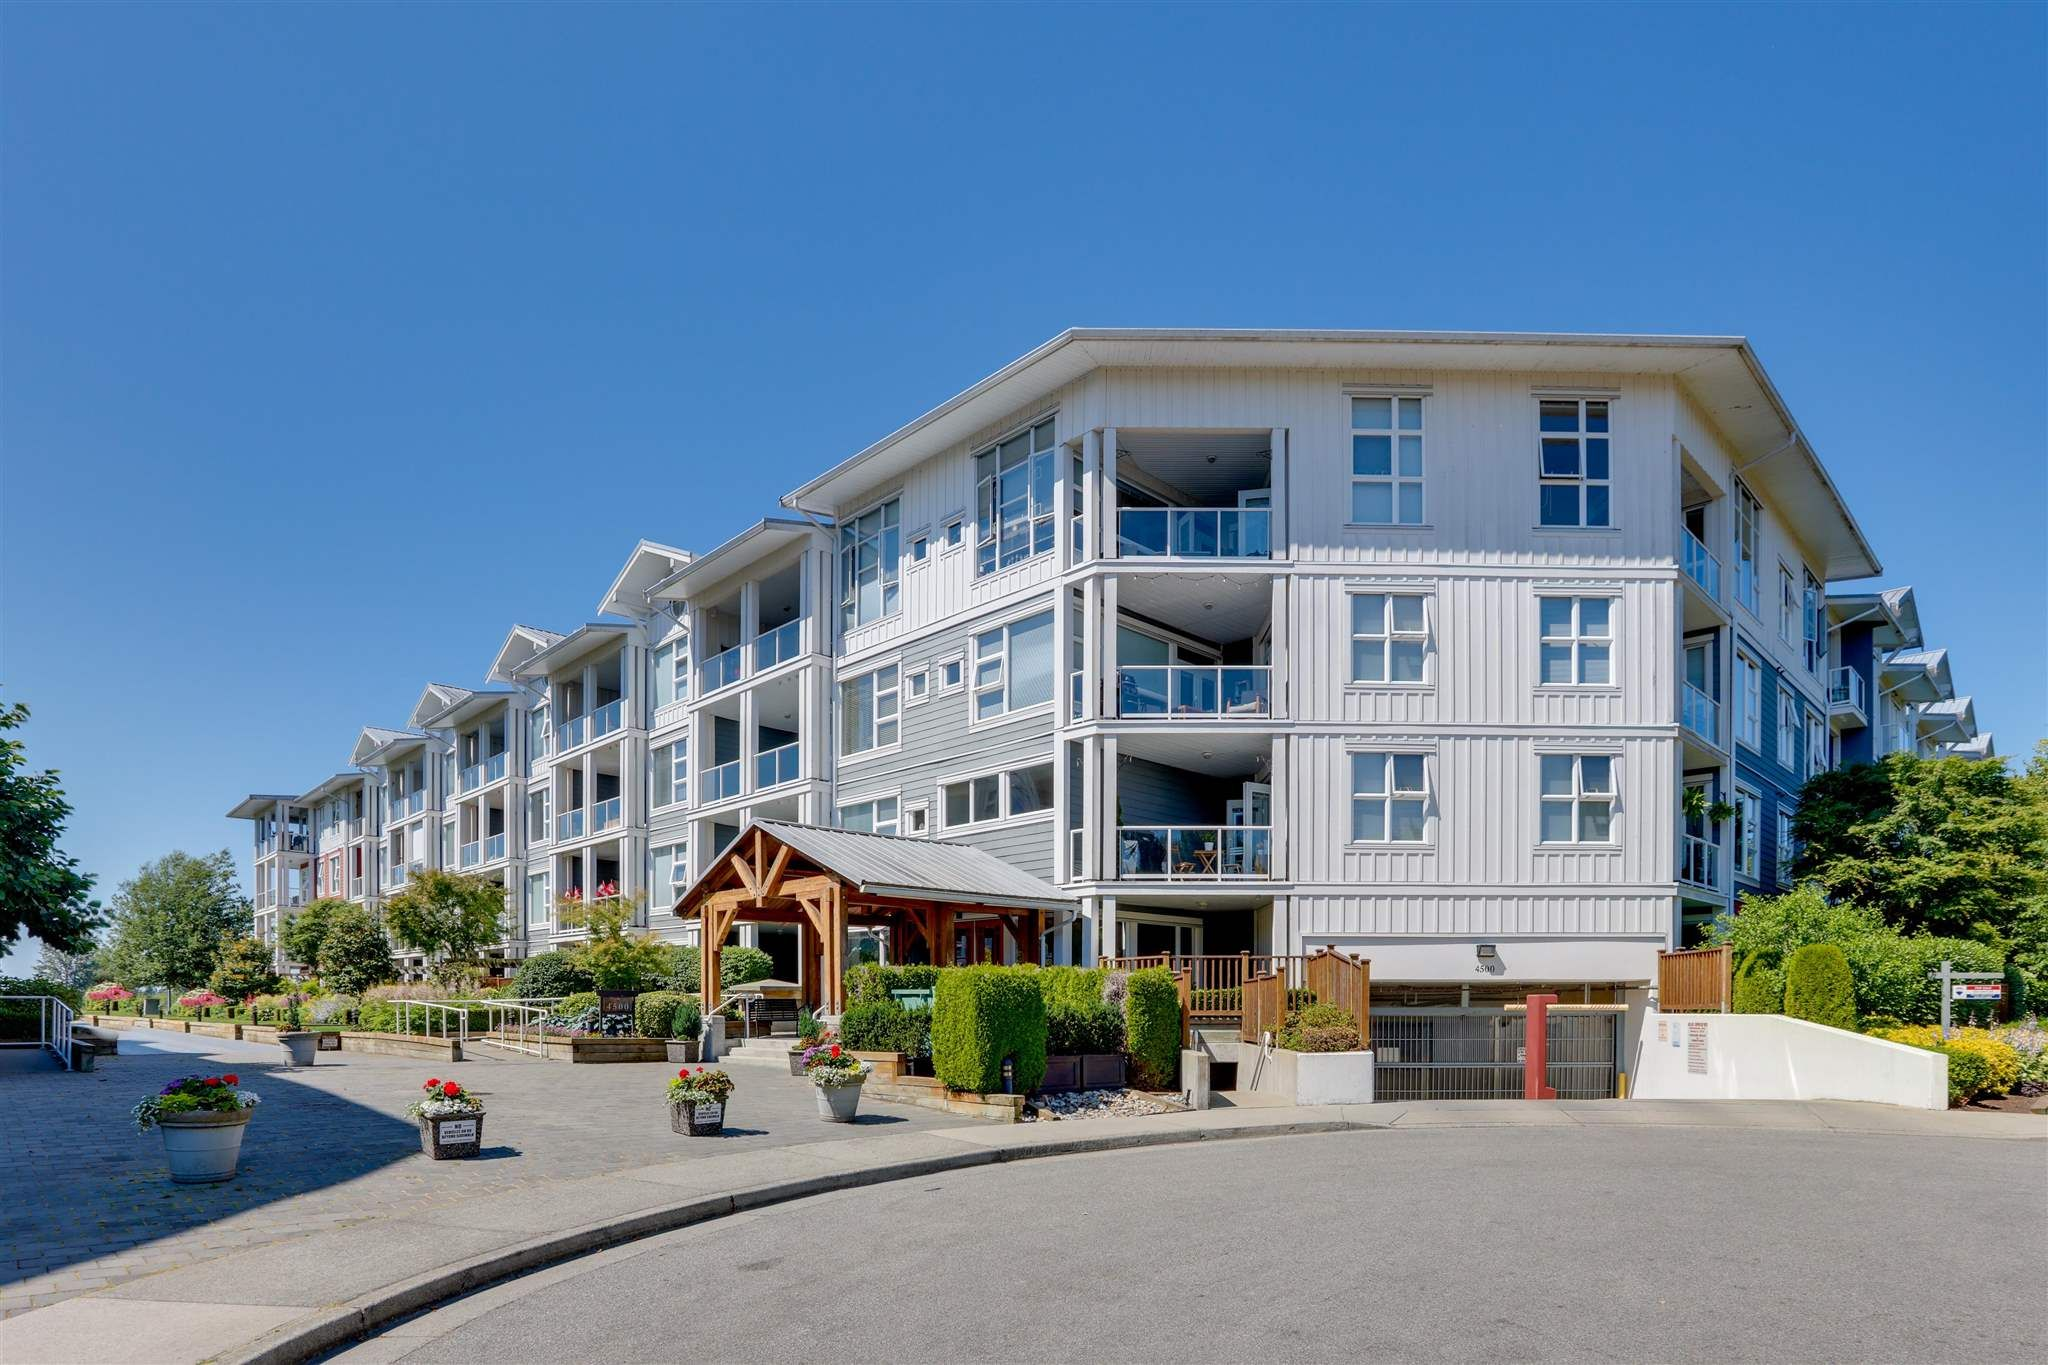 """Main Photo: 208 4500 WESTWATER Drive in Richmond: Steveston South Condo for sale in """"COPPERSKY WEST"""" : MLS®# R2599023"""